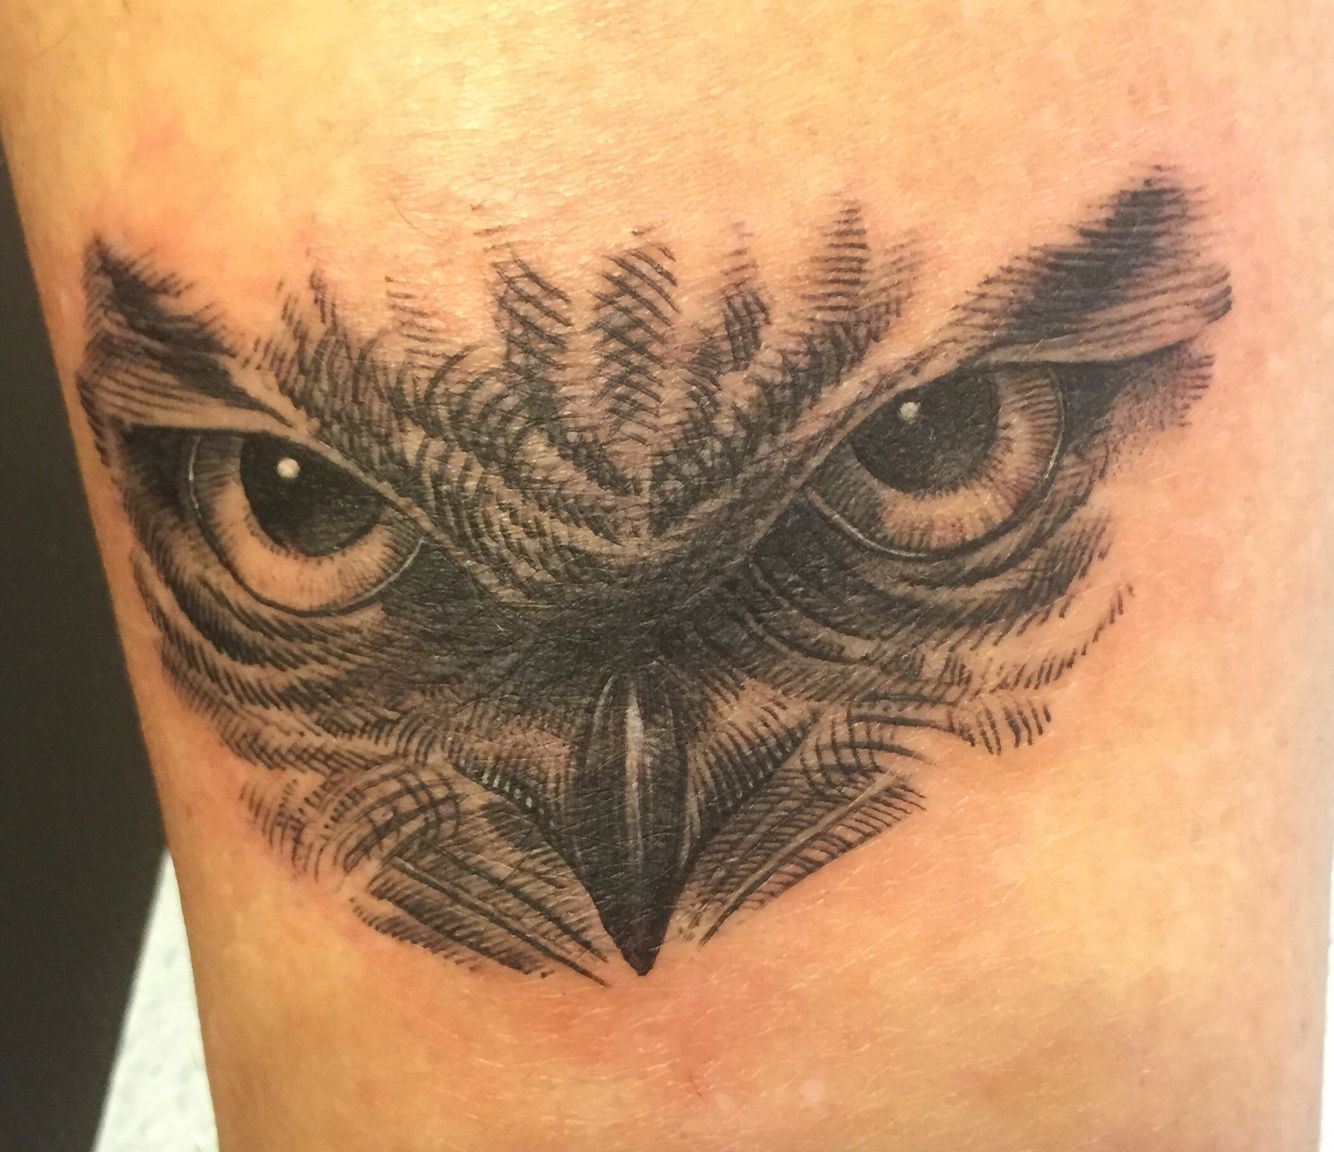 Owl Eye Tattoo By Marc At Electric Ladyland Tattoo In NOLA